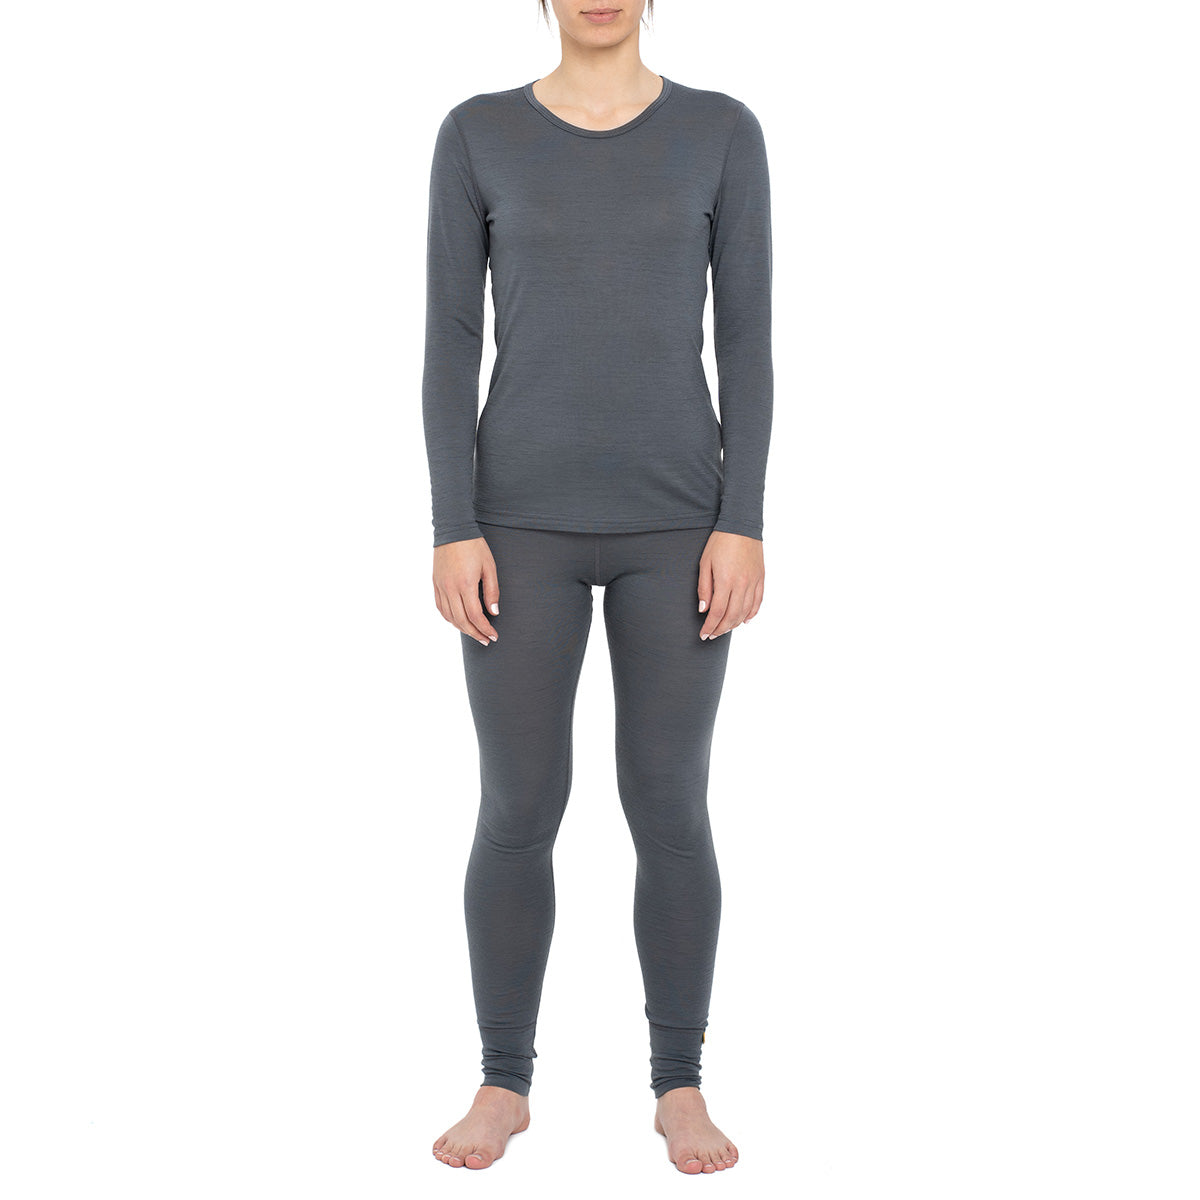 Women's Long Sleeve Set 160gsm Merino Wool Perfect Grey